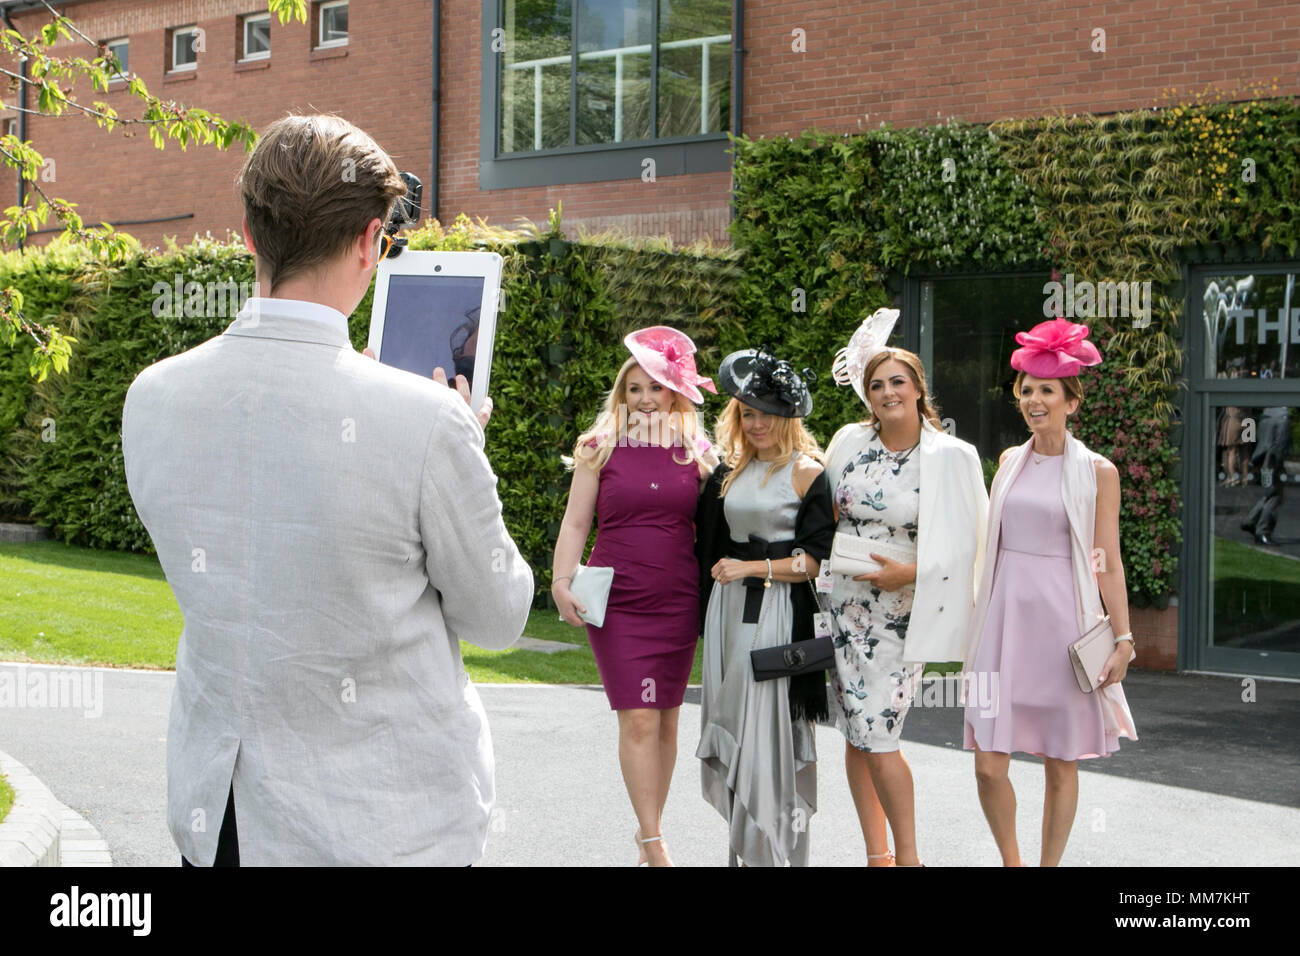 Boodles May Festival, Ladies Day Chester Races. Chester, UK. 10th May 2018.  Ladies Day gets under way in fine style on the second day of the Boodles May Festival at the Chester racecourse.  High spirits and fine fashions were the order of the day as racegoers flocked in to this fabulous event on the horse racing calendar in the beautiful city of Chester.  Credit: Cernan Elias/Alamy Live News - Stock Image